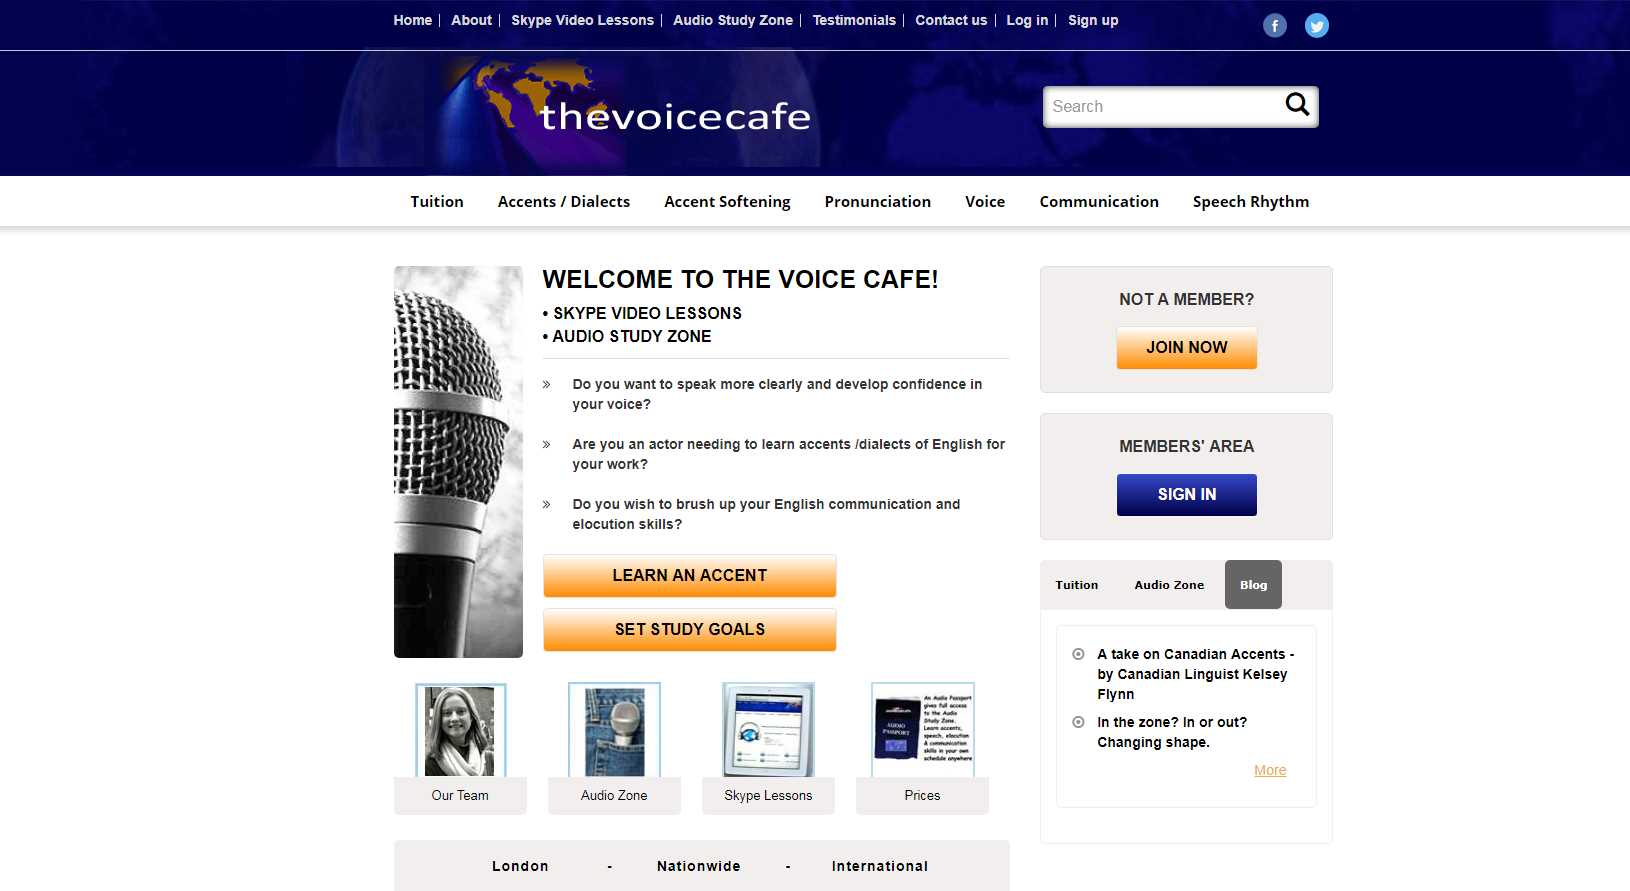 Thevoicecafe